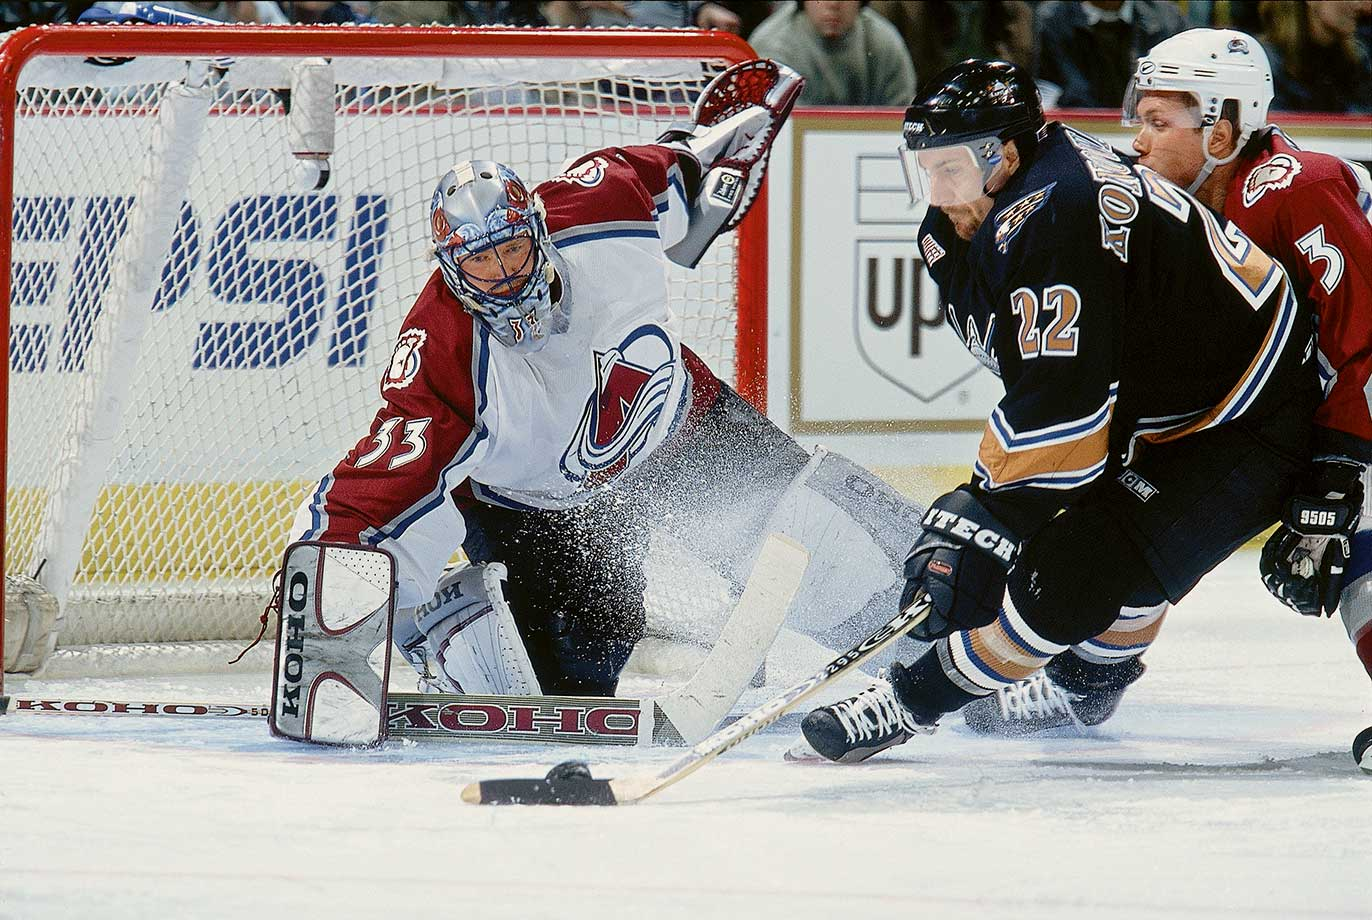 March 19, 2002 — Avalanche vs. Capitals